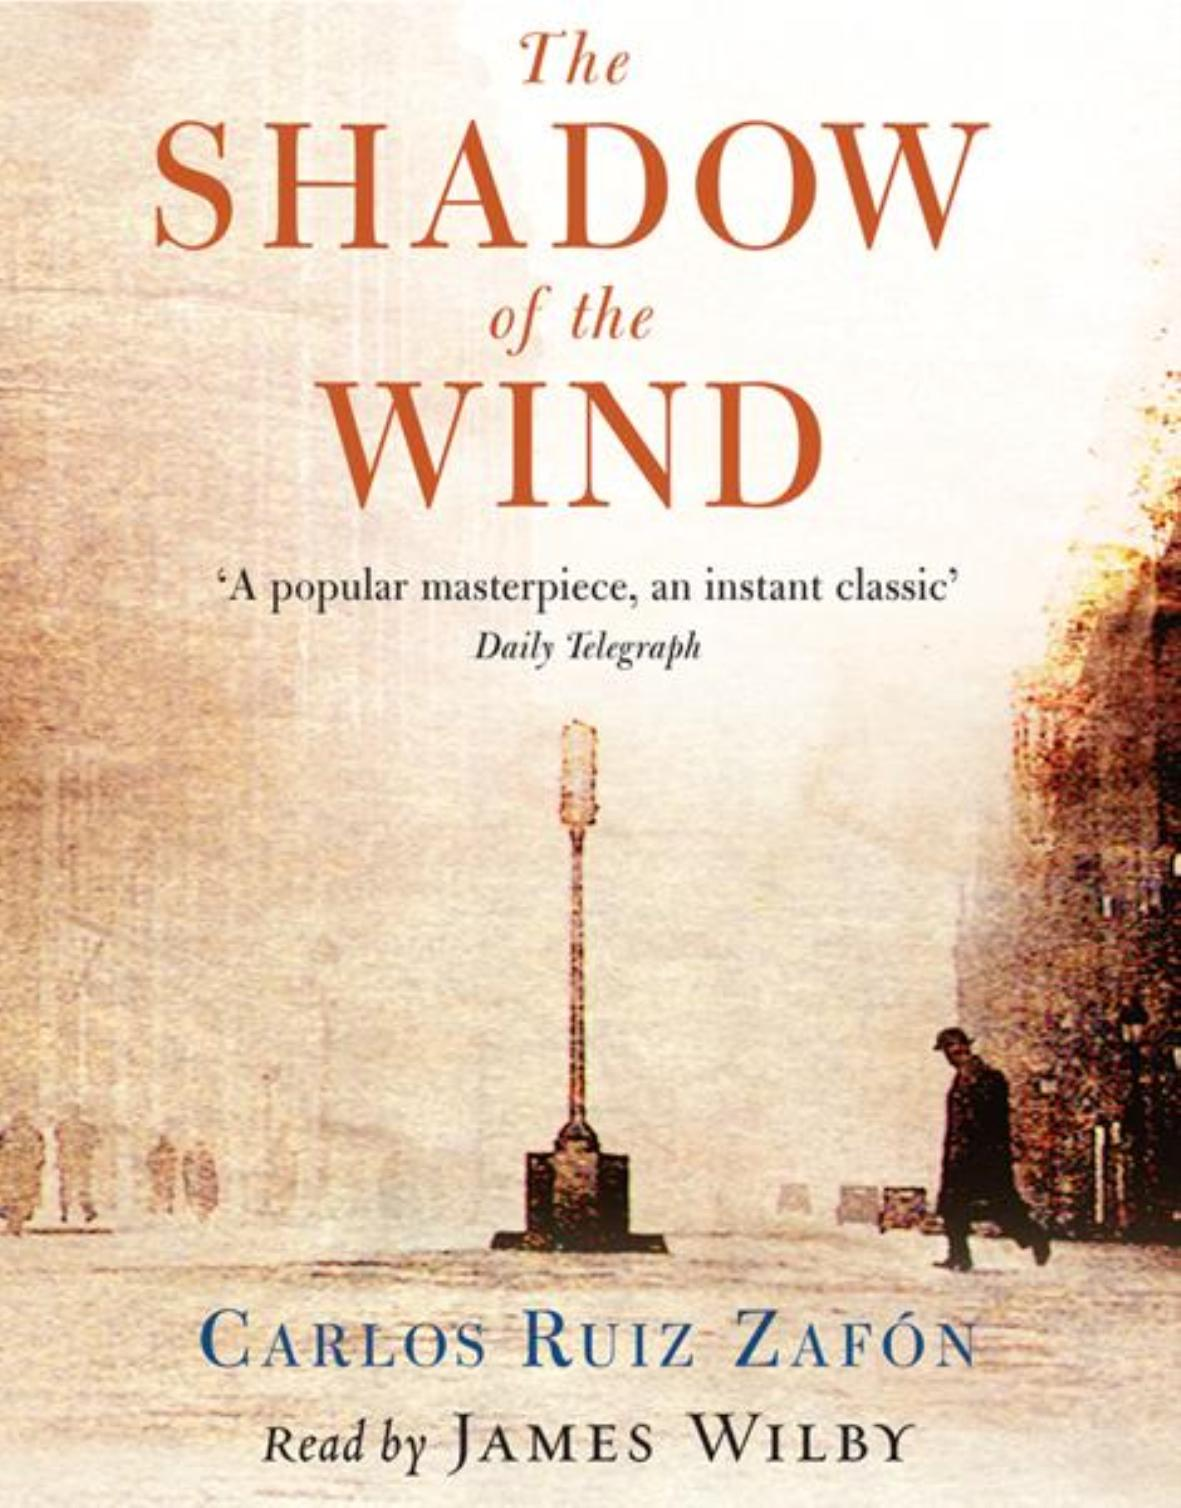 The Shadow of the Wind by Carlos Ruiz Zafon   Reviewed on Clear Eyes, Full Shelves